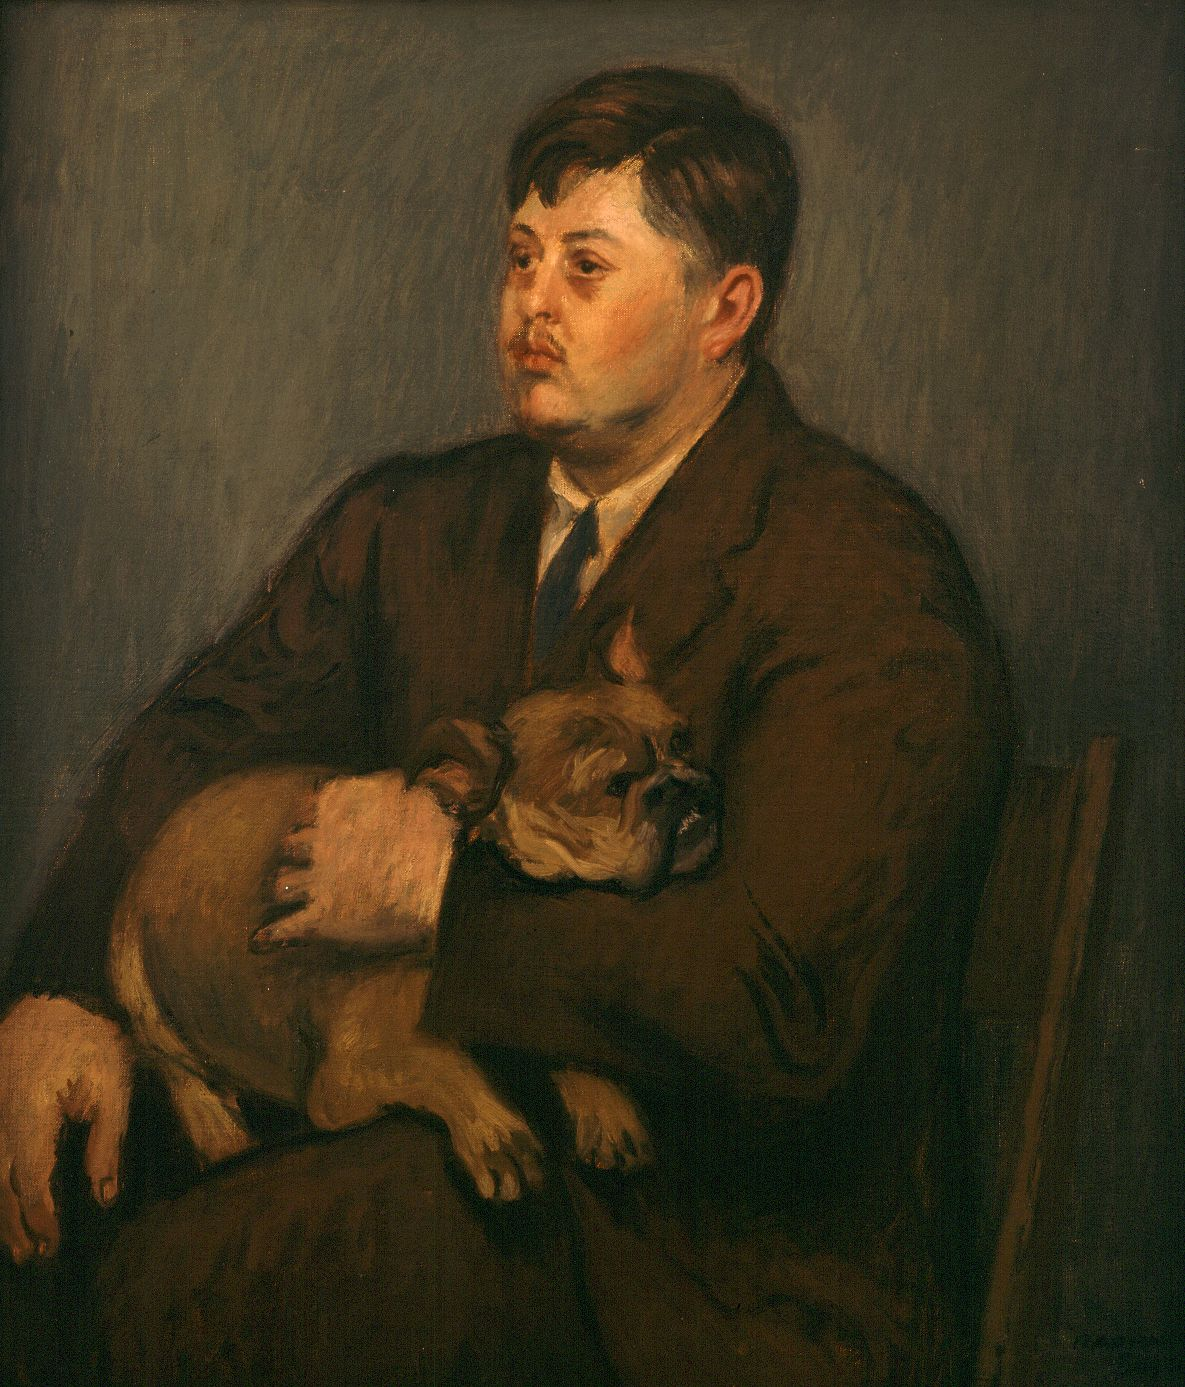 Raphael Soyer, Portrait of Philip Evergood, 1942, oil on canvas, 26 x 22 inches